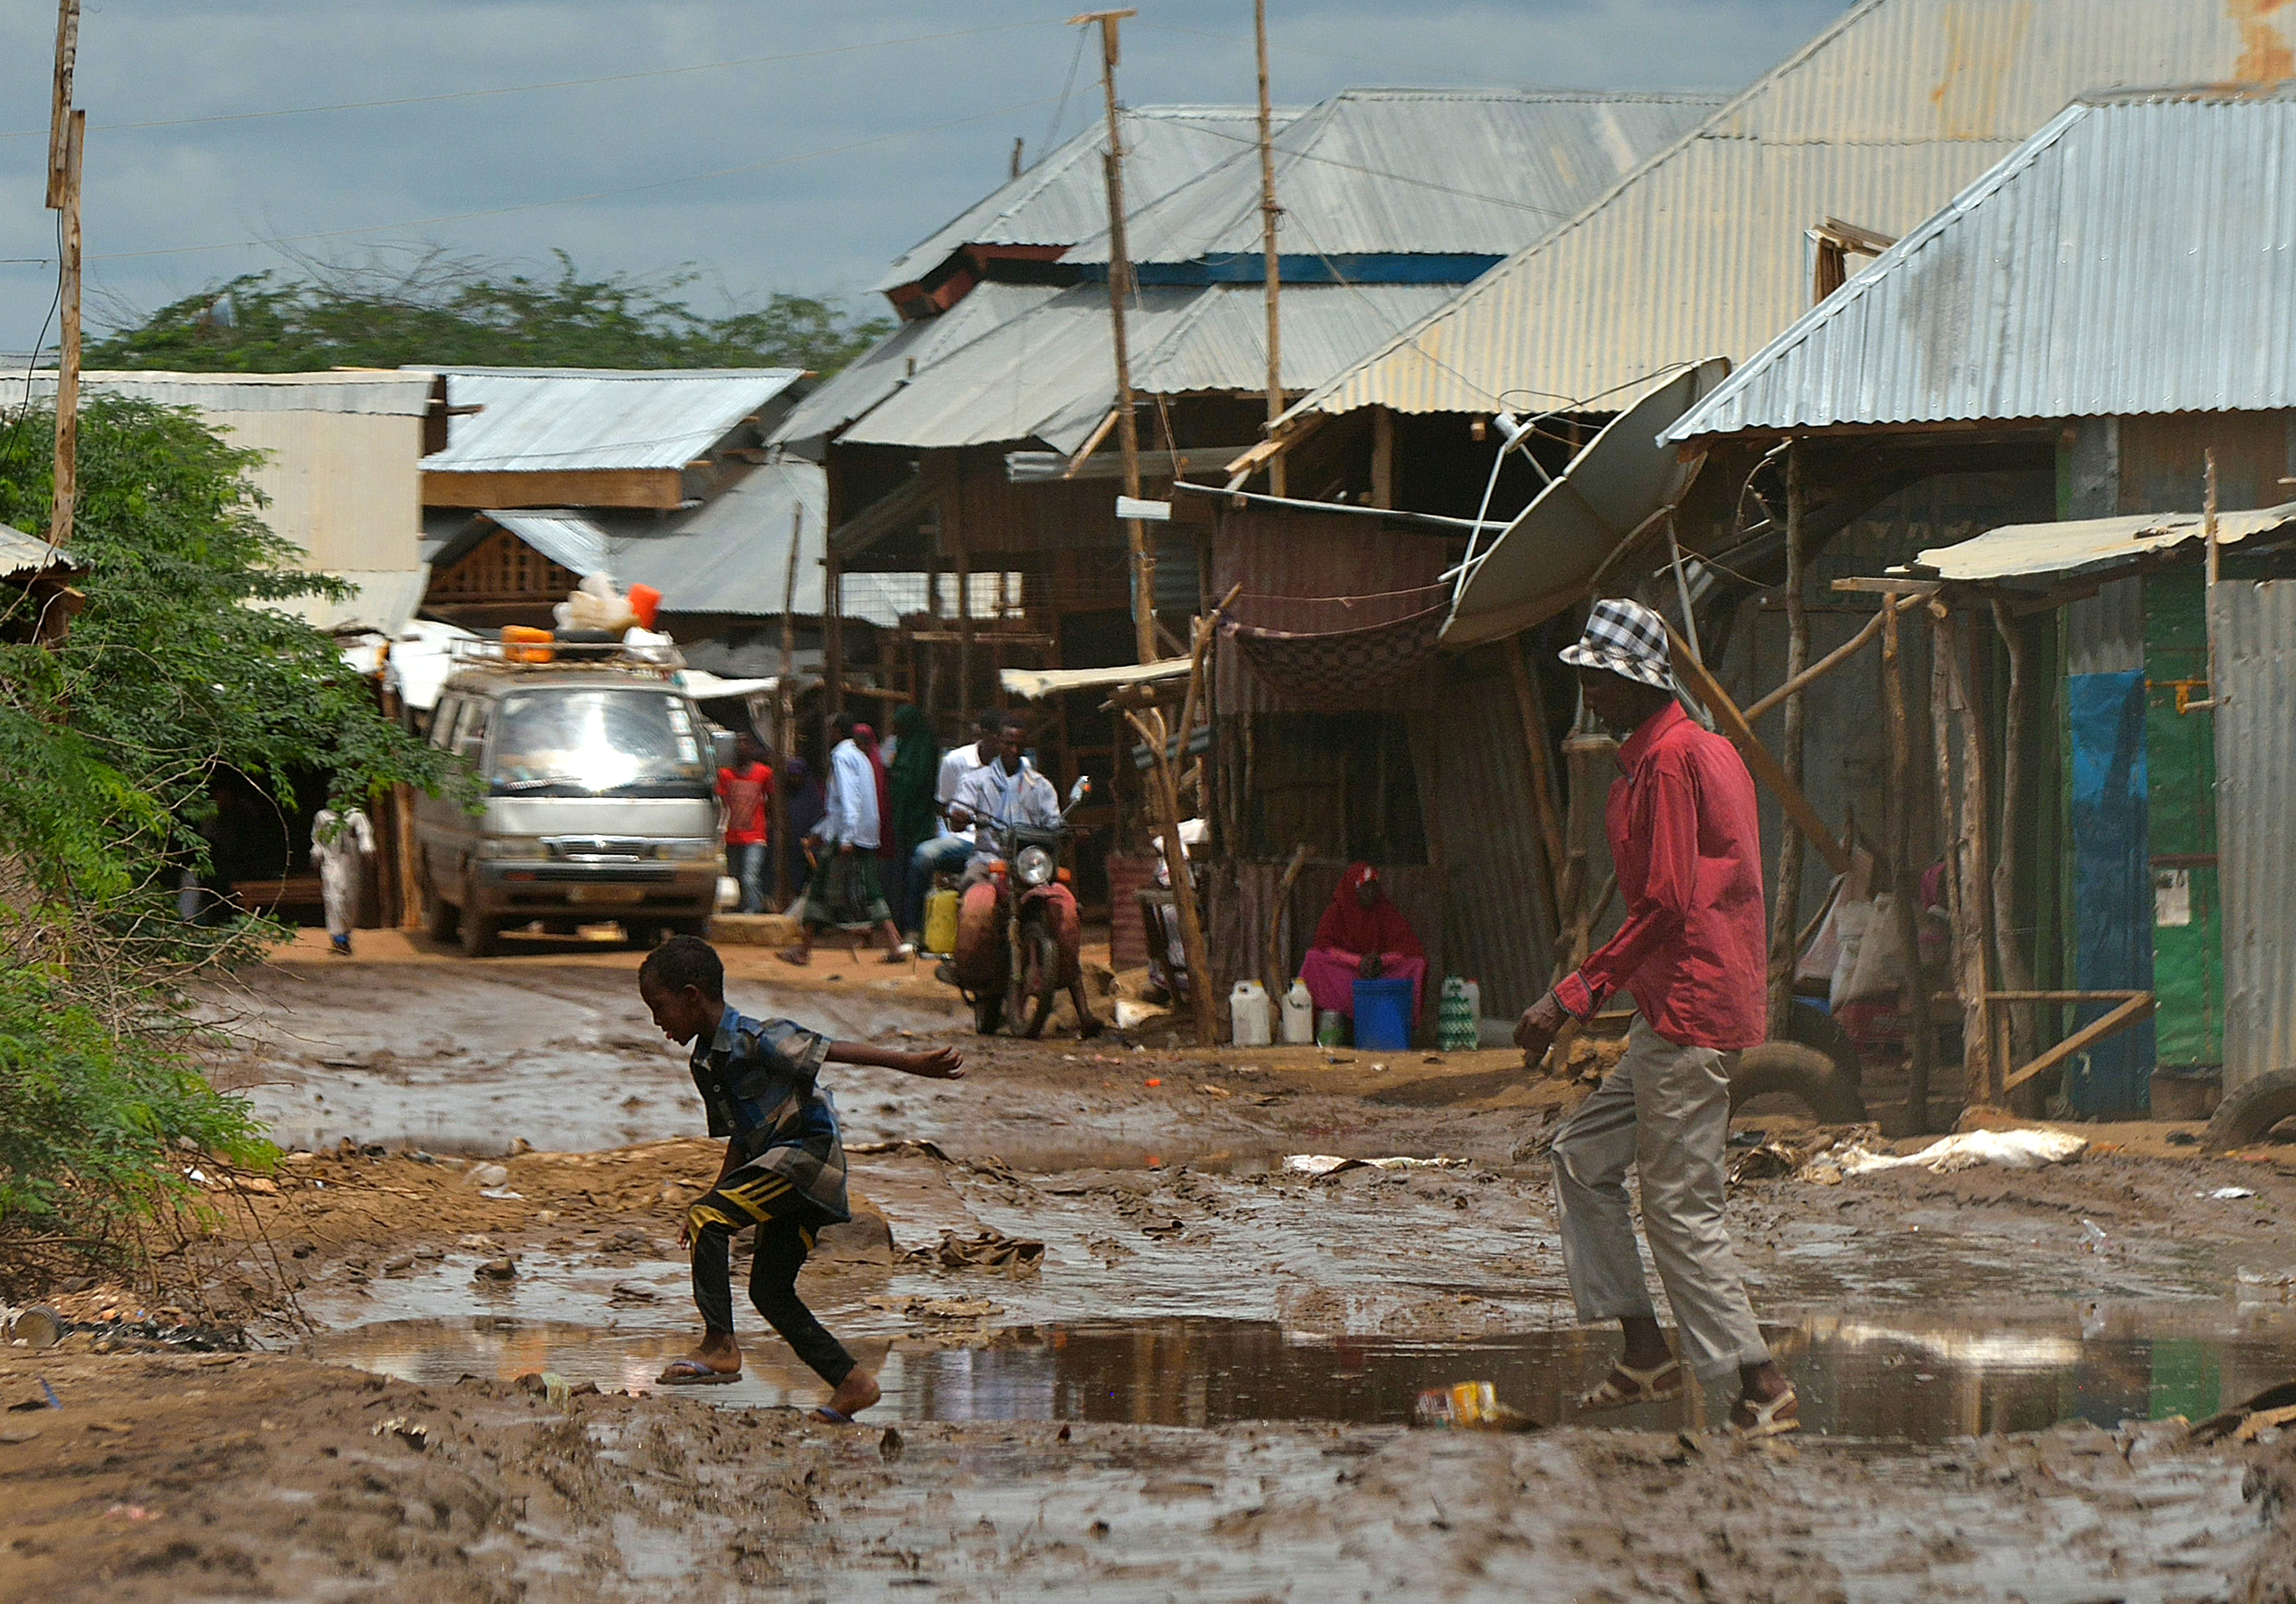 People cross a muddy street at the market at IFO main camp of the Dadaab refugee camp, north of the Kenyan capital Nairobi, on April 28, 2015.  AFP PHOTO/Tony KARUMBA        (Photo credit should read TONY KARUMBA/AFP/Getty Images)